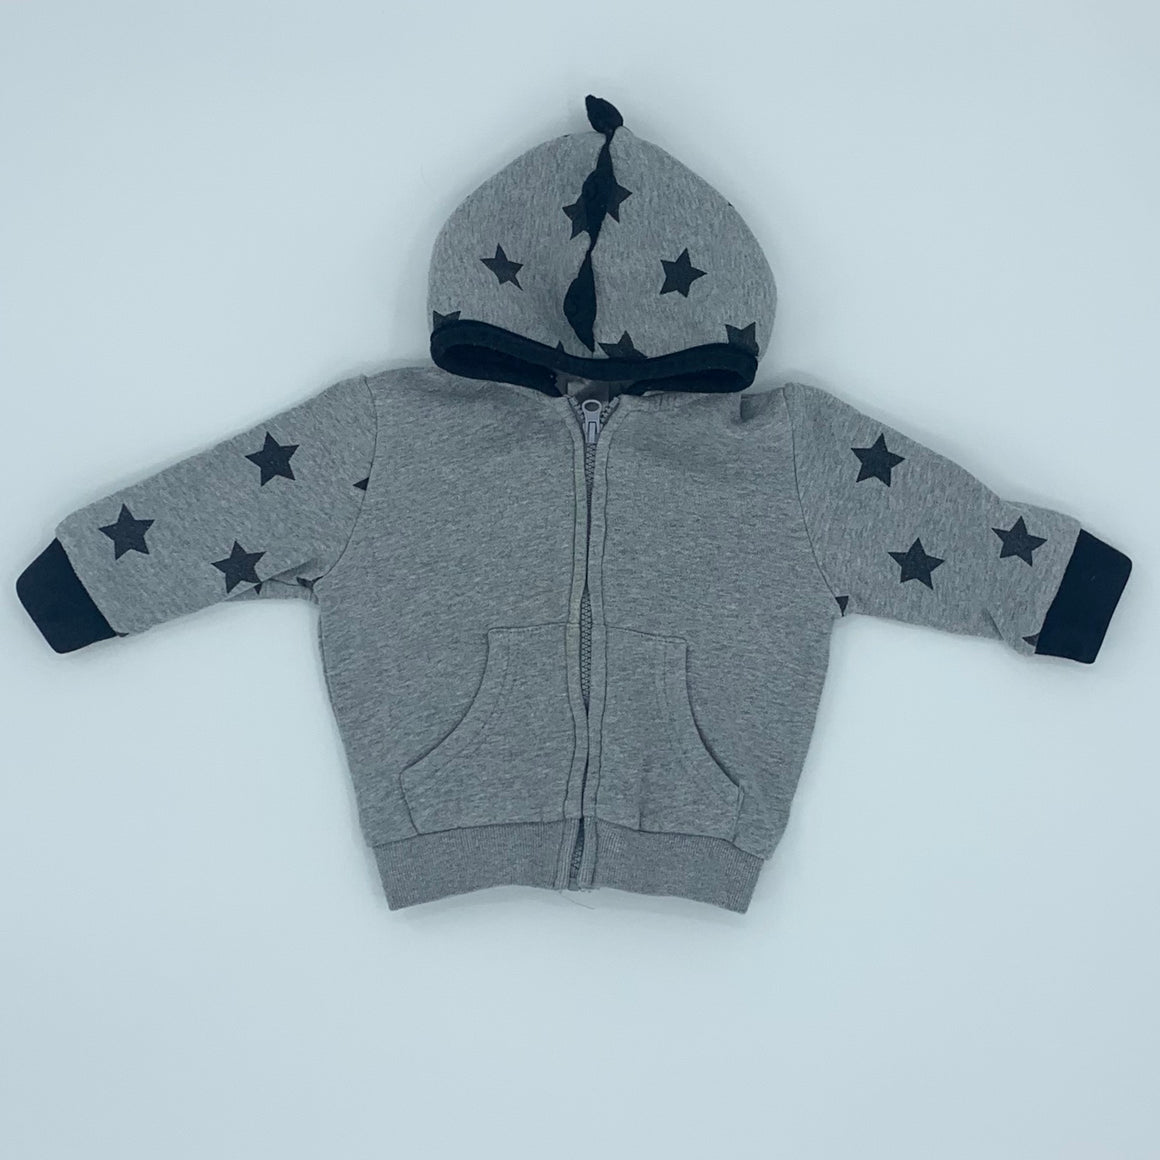 Gently Worn Blade & Rose hooded jumper size 6-12 months